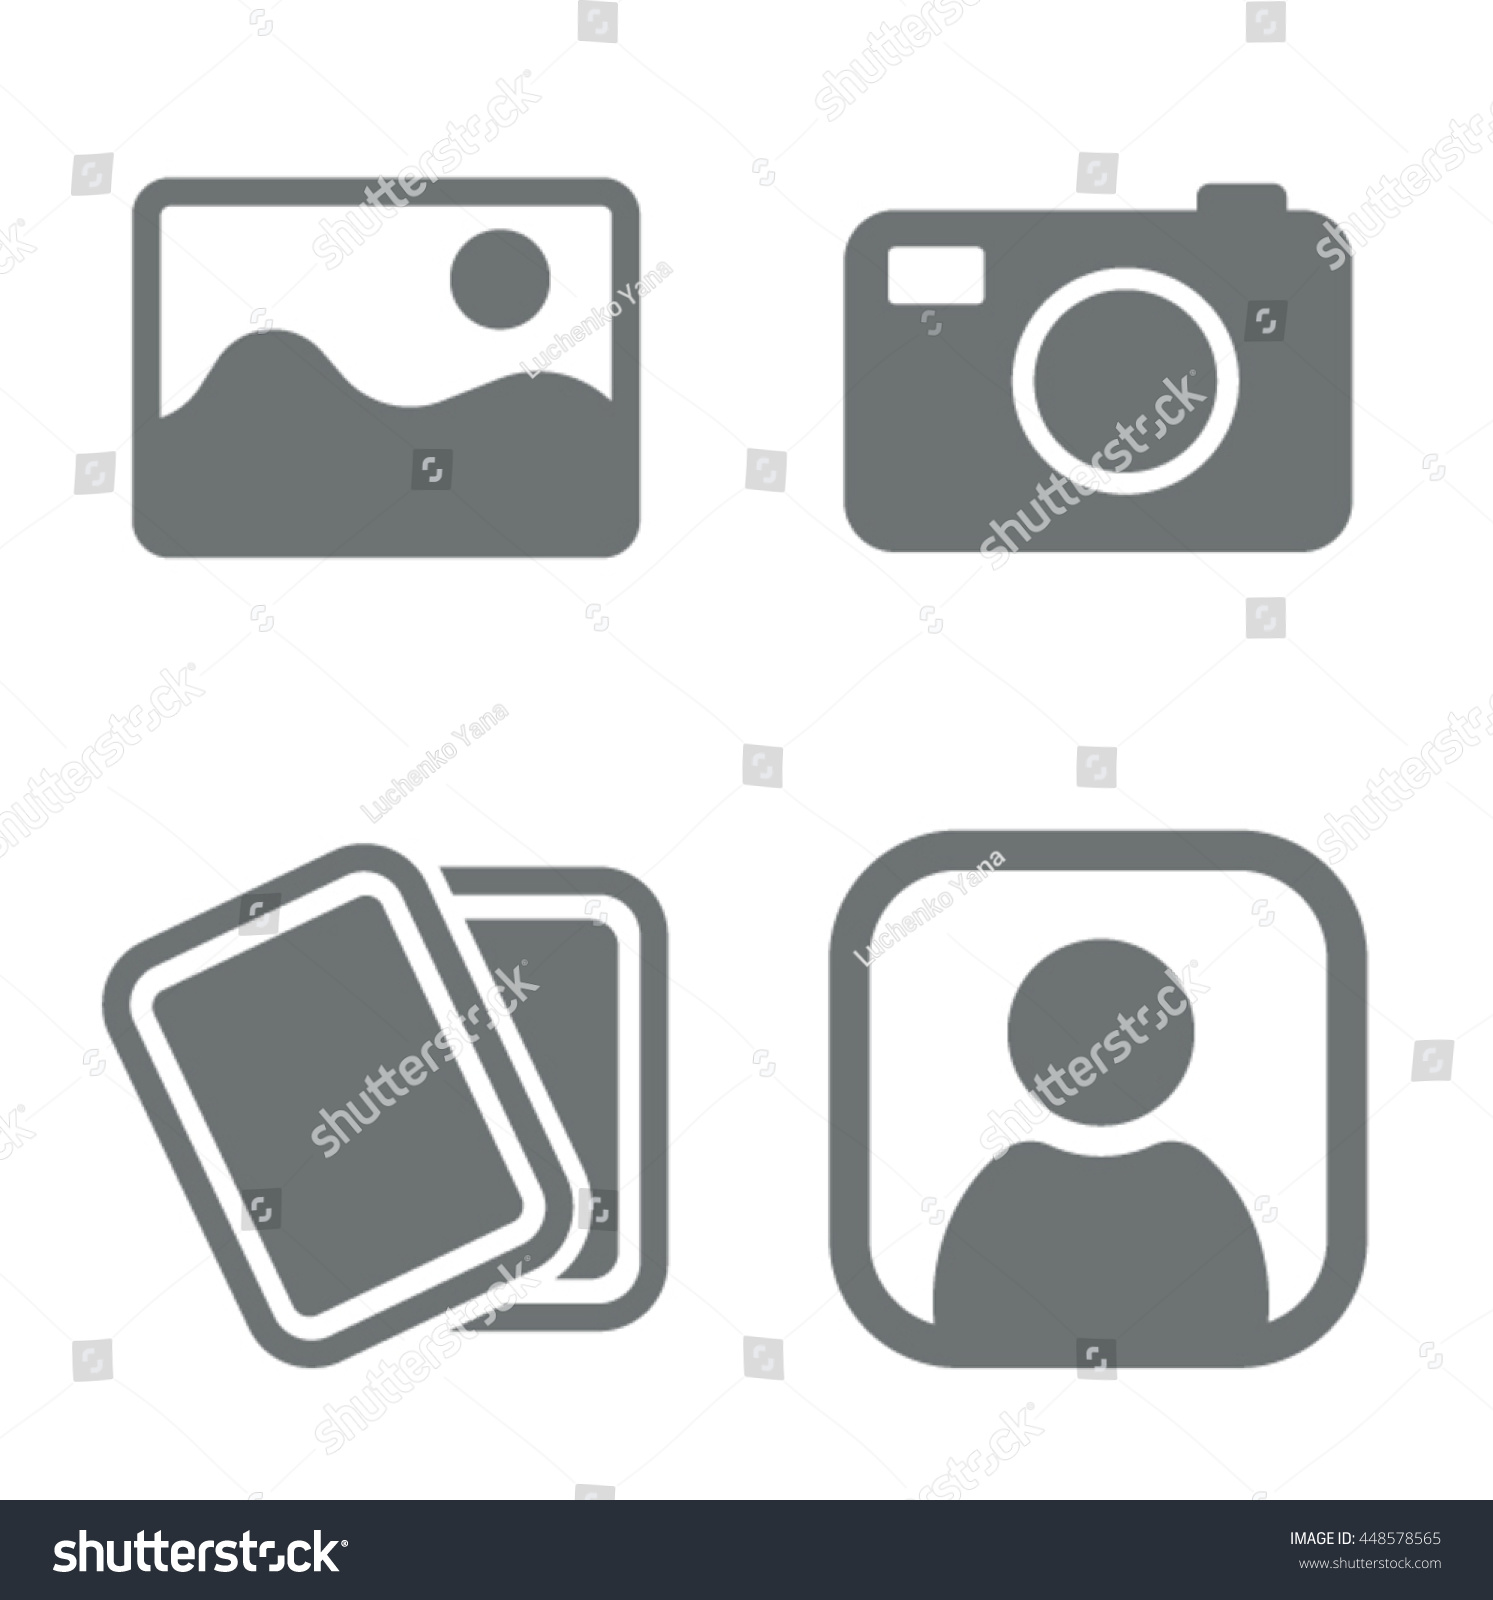 No image available or Picture coming soon Set of pictures Missing image sign or uploading pictures Vector